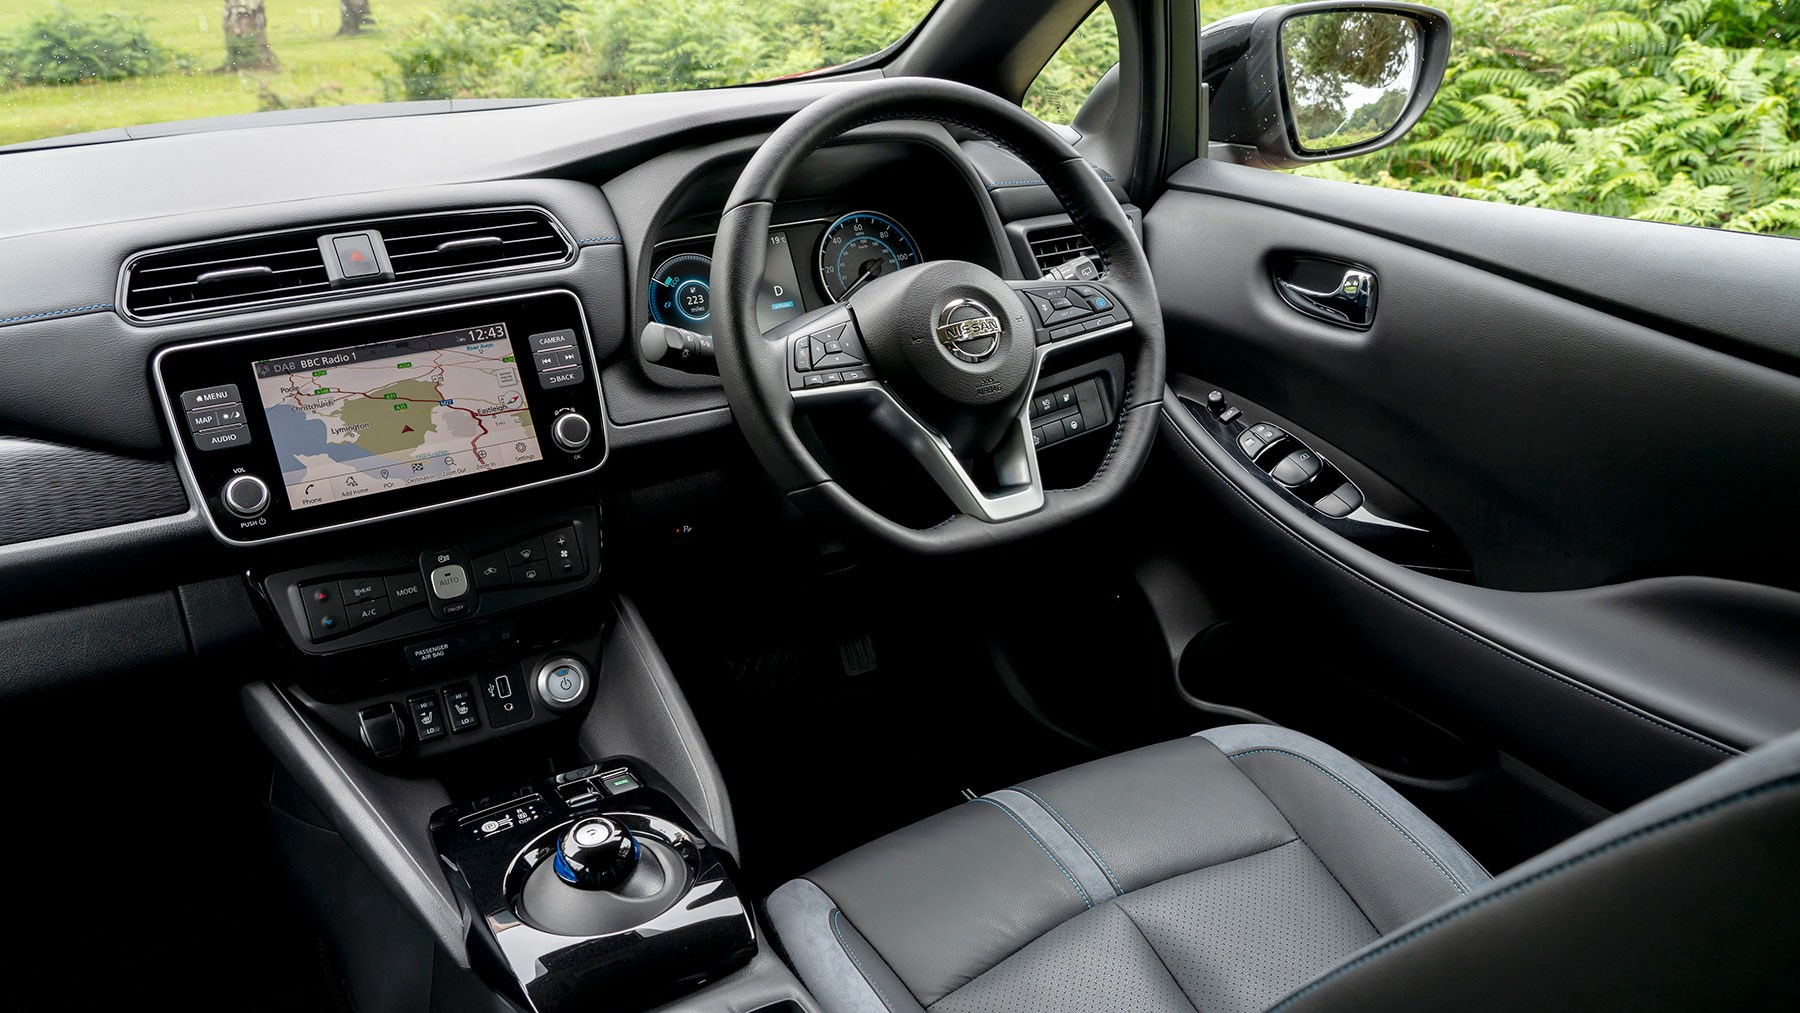 Nissan Leaf interior: lots of buttons